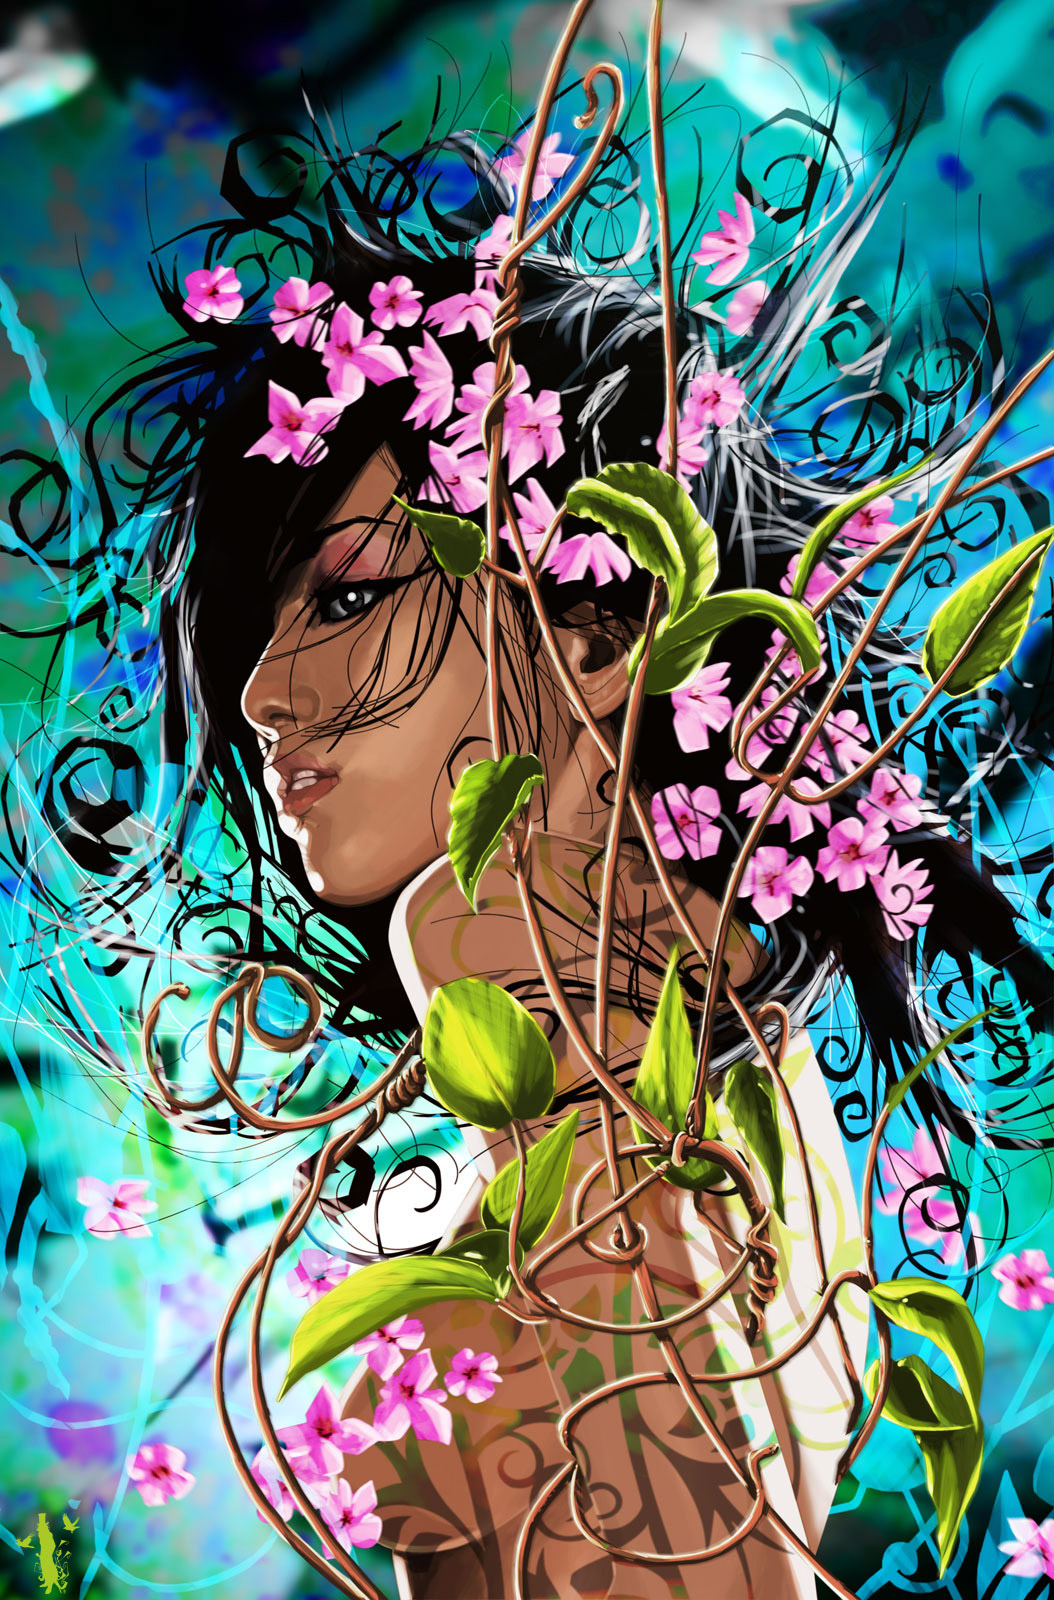 The Rose Angel Picture (2d, Illustration, Girl, Woman, Flowers Wallpaper